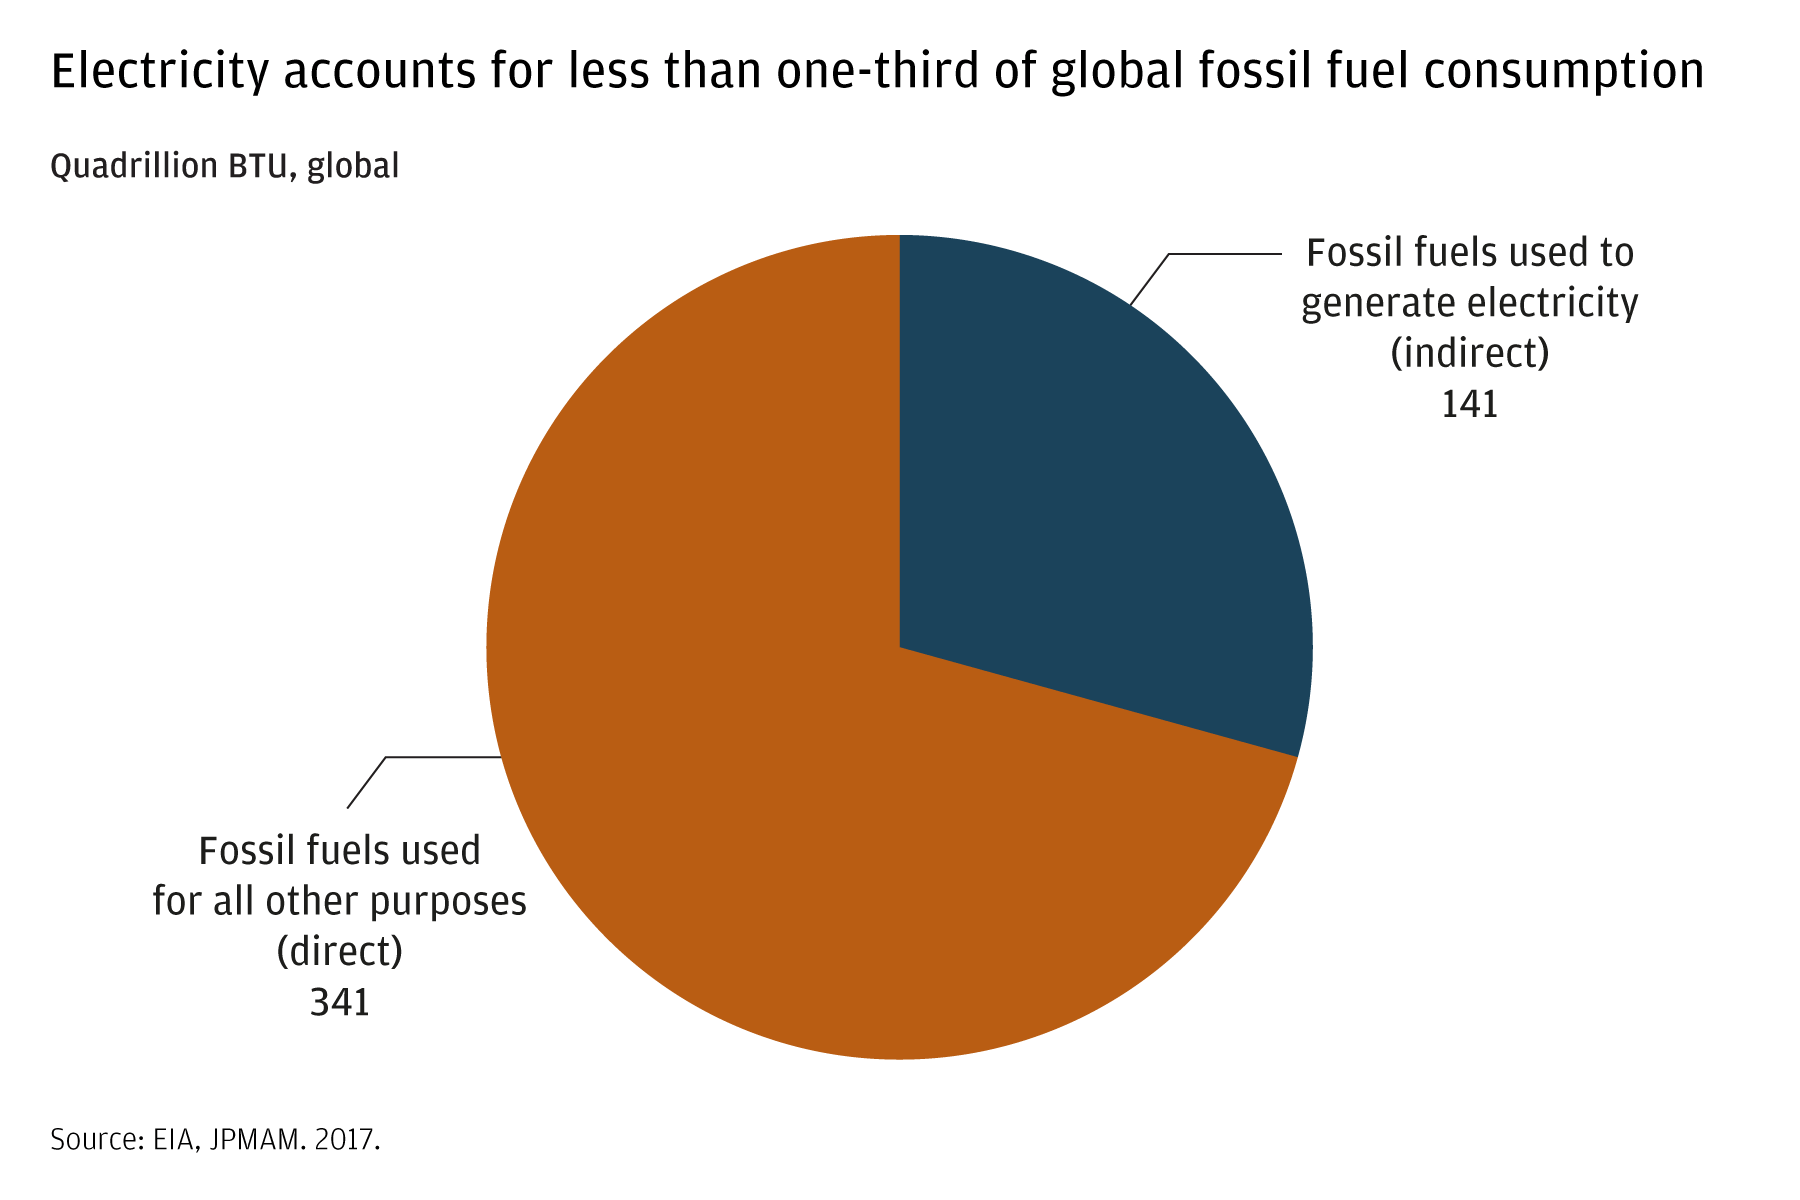 This pie chart shows that nearly three-quarters of fossil fuels are used for purposes other than electricity generation.